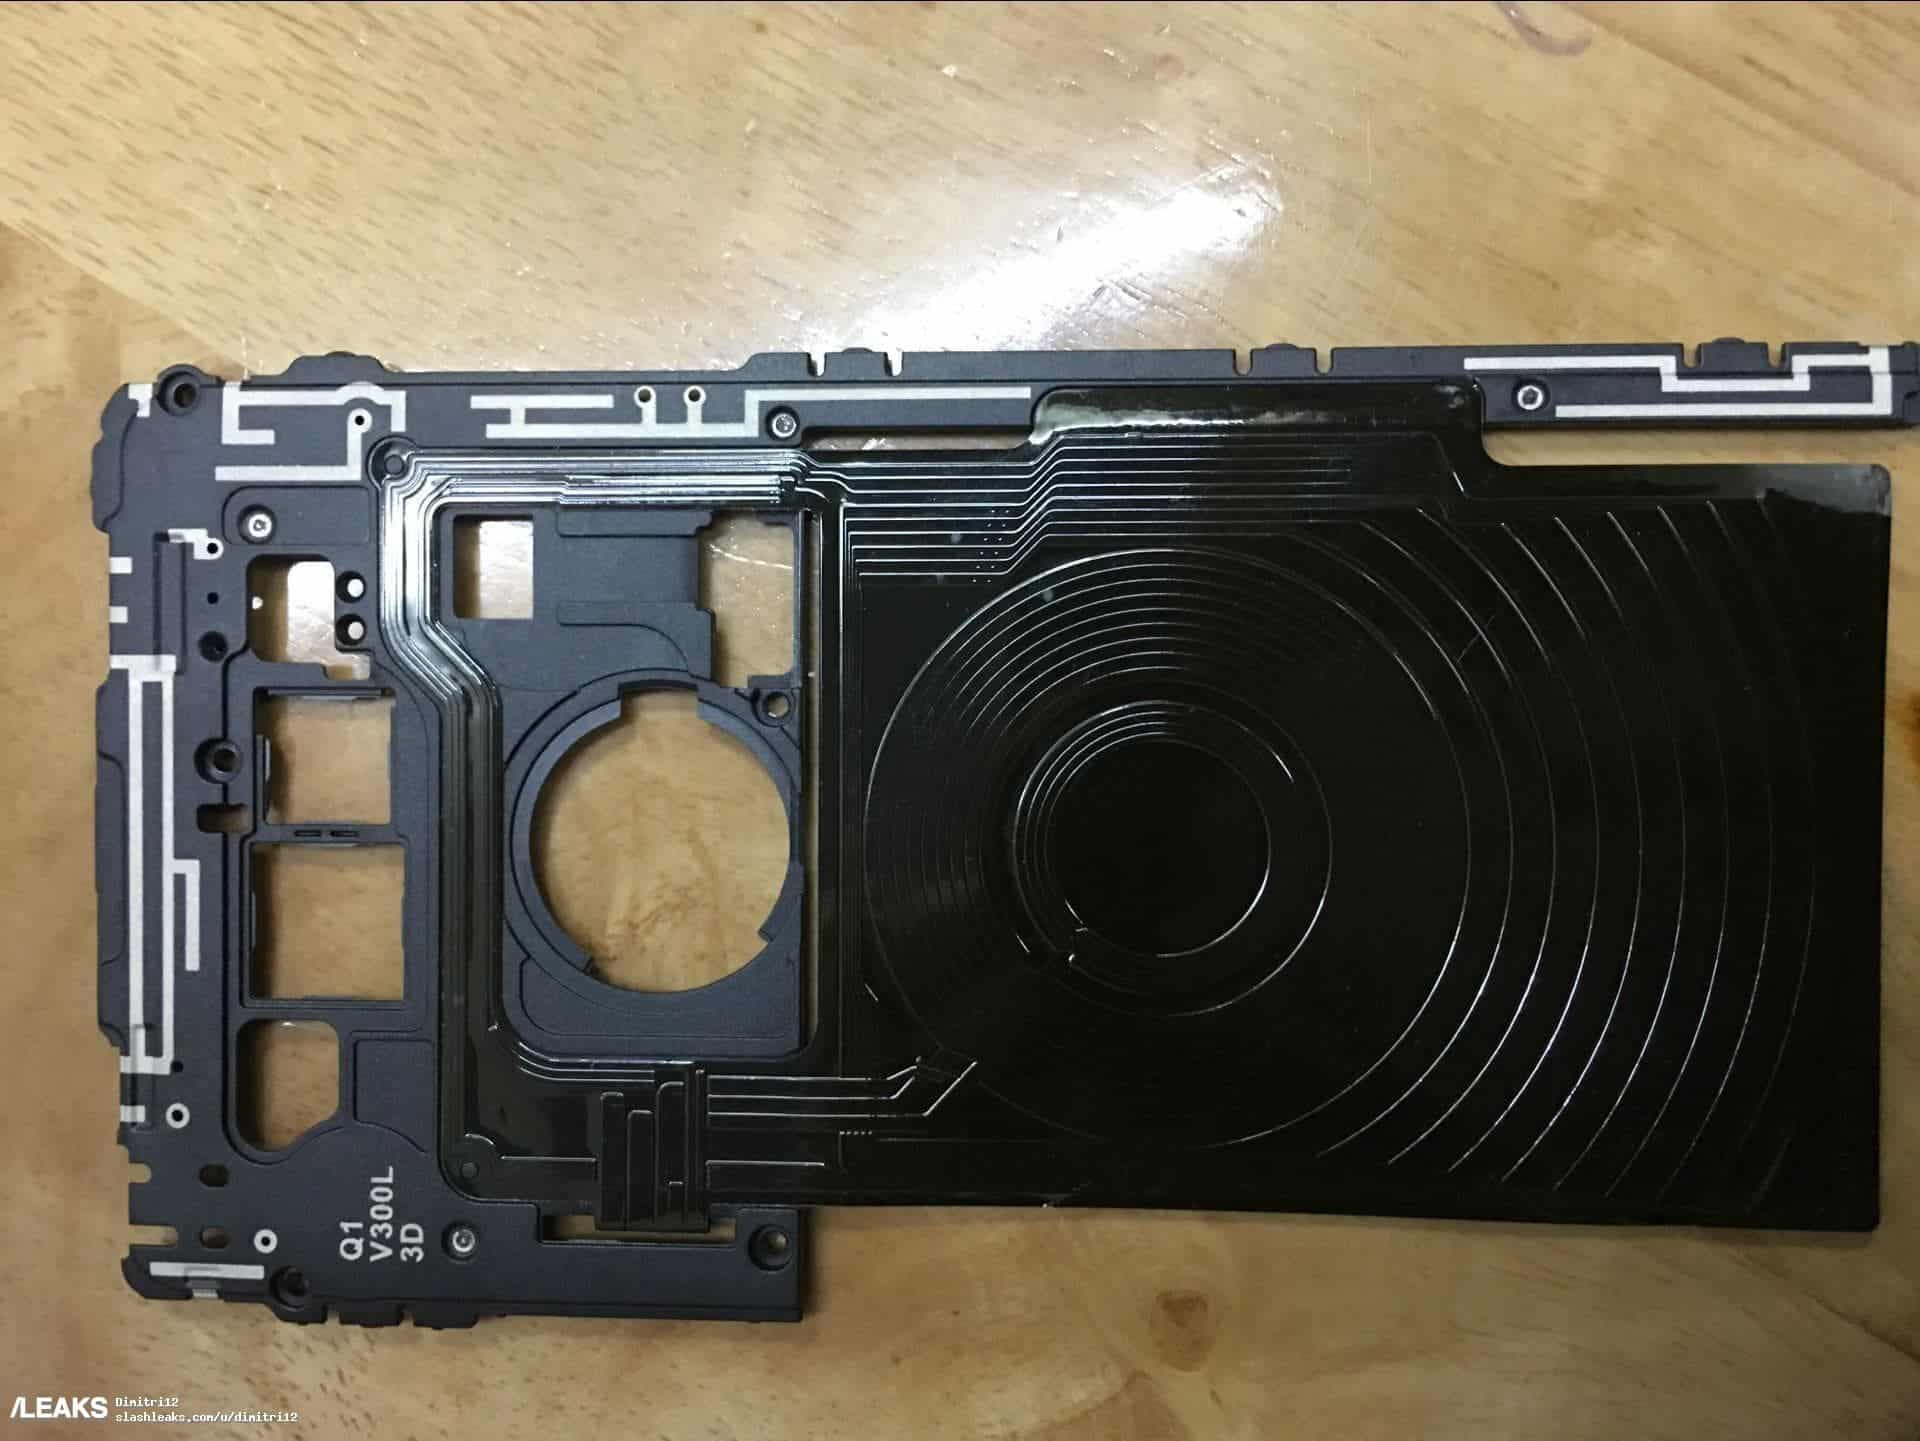 The LG V30 wirless charging coil top